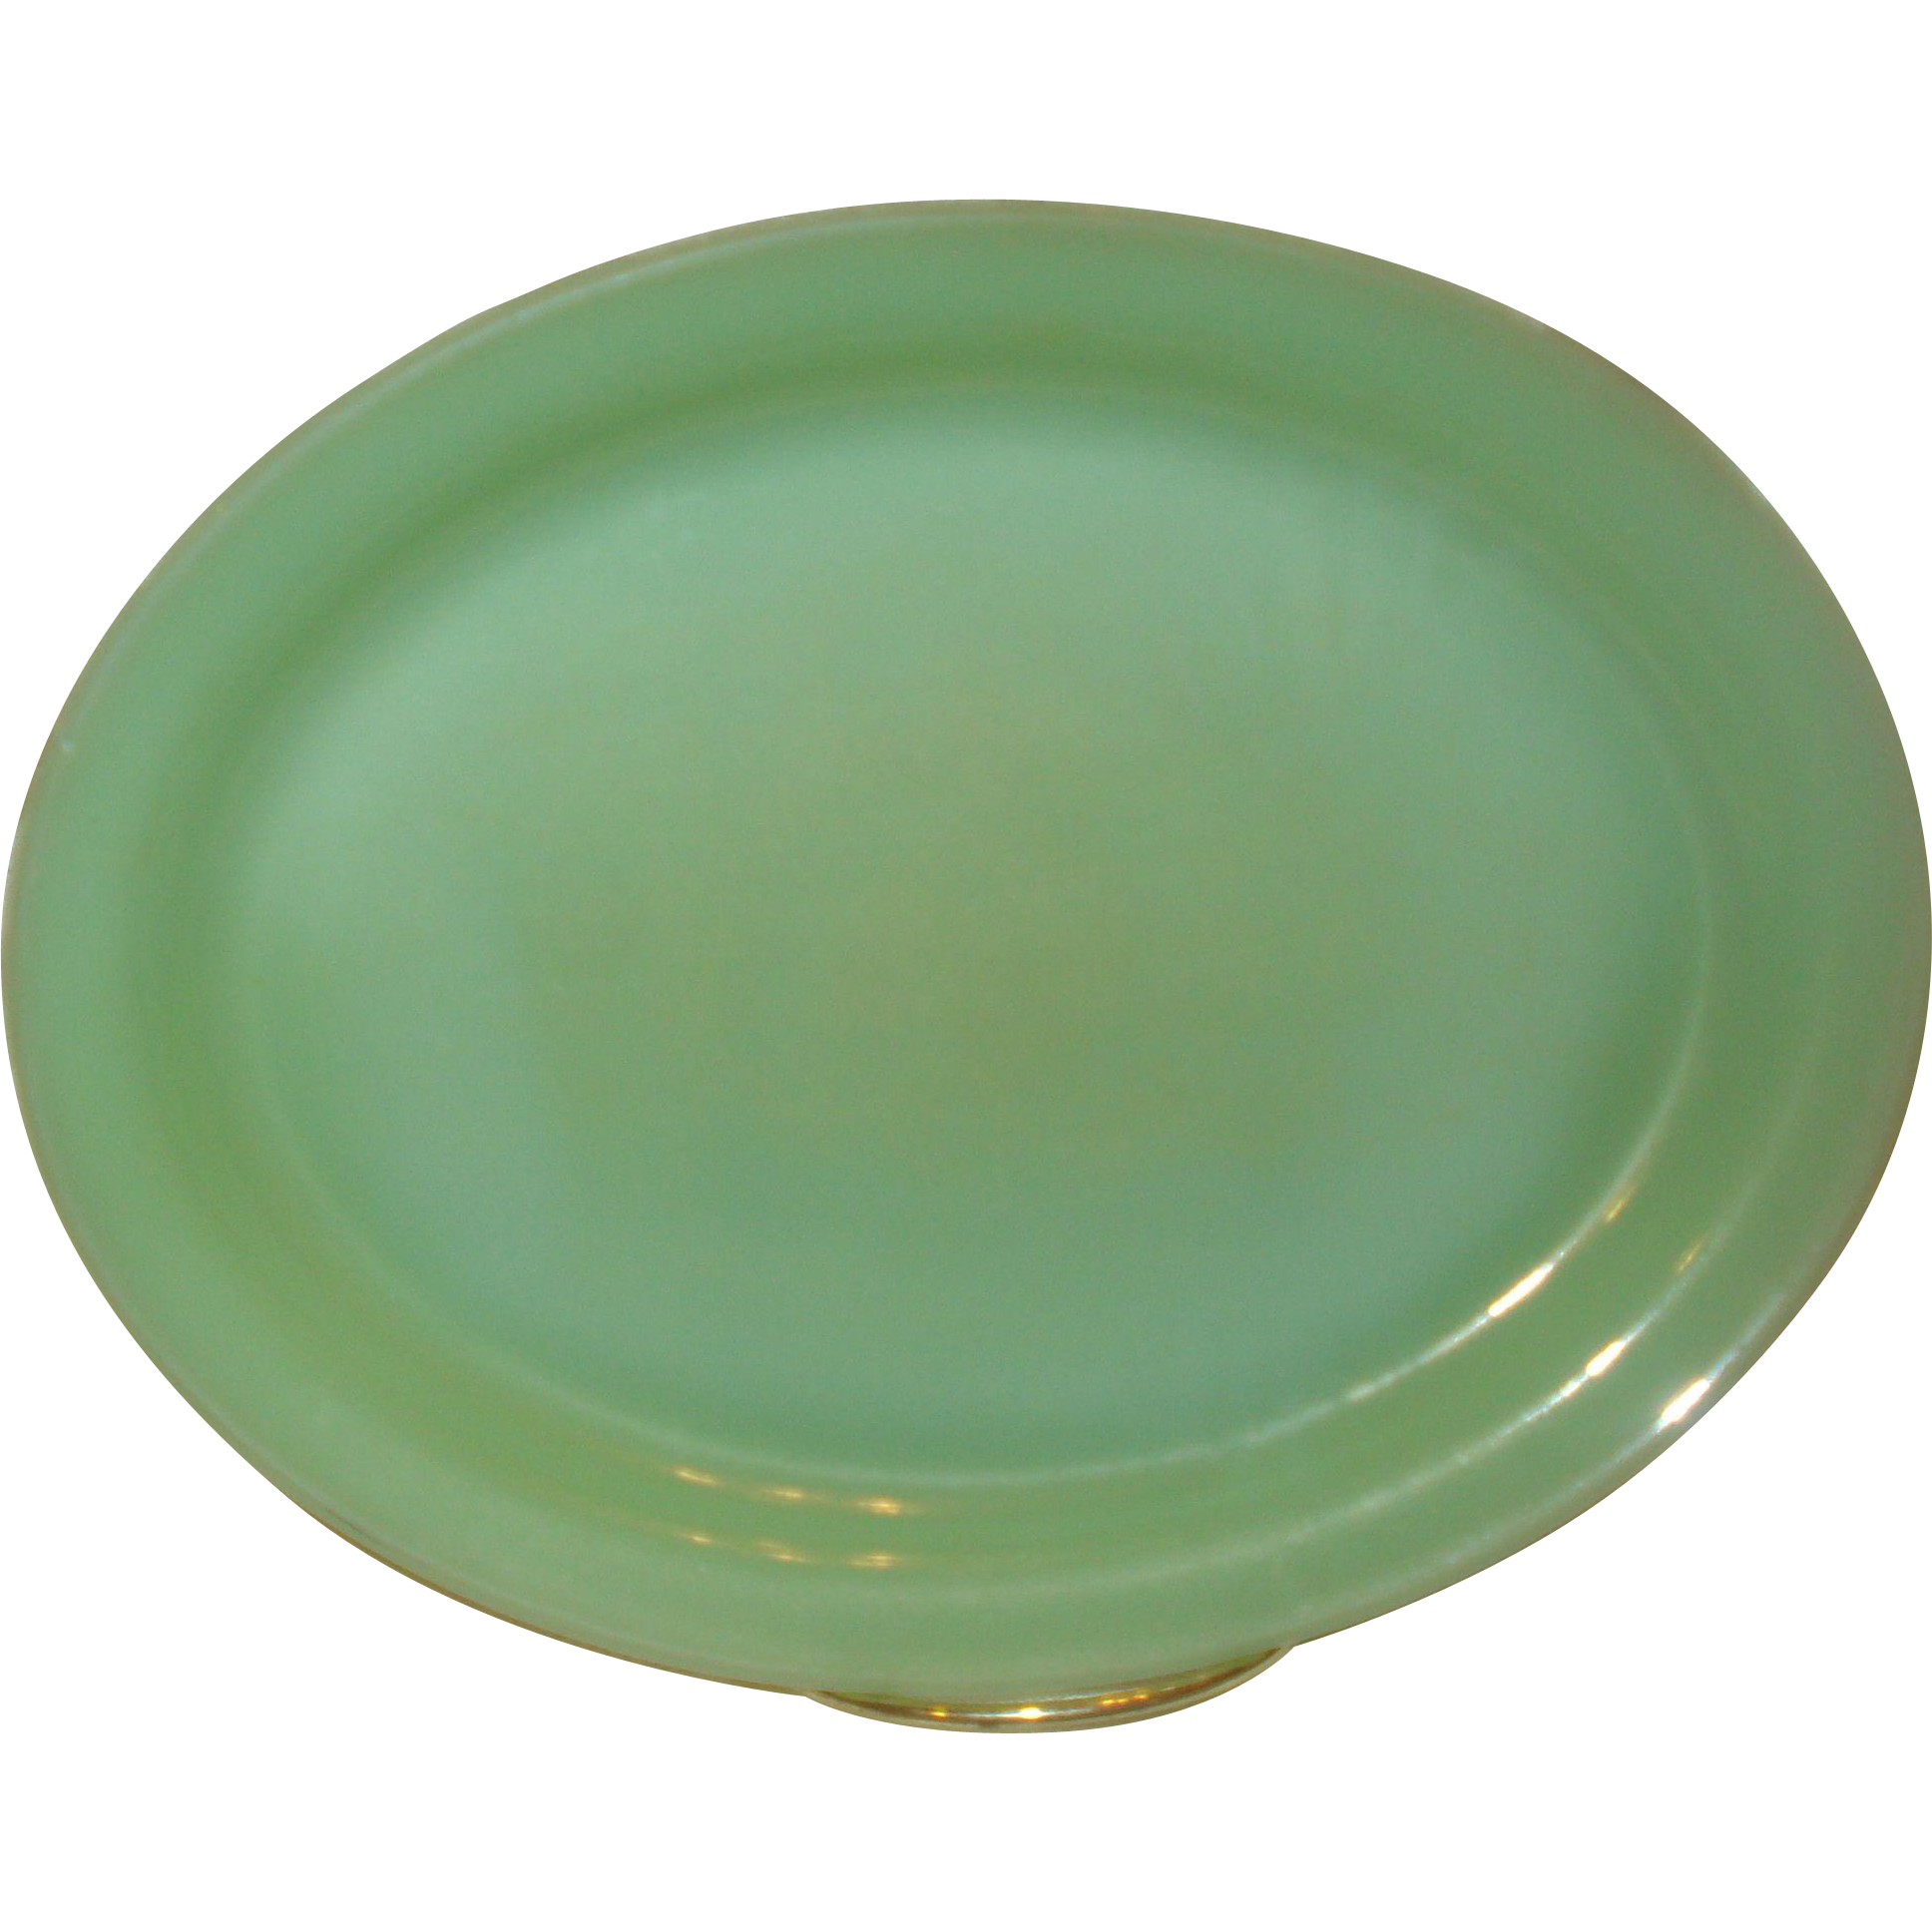 Nice Oval Jadite Platter - Hard to Find Shape & Size